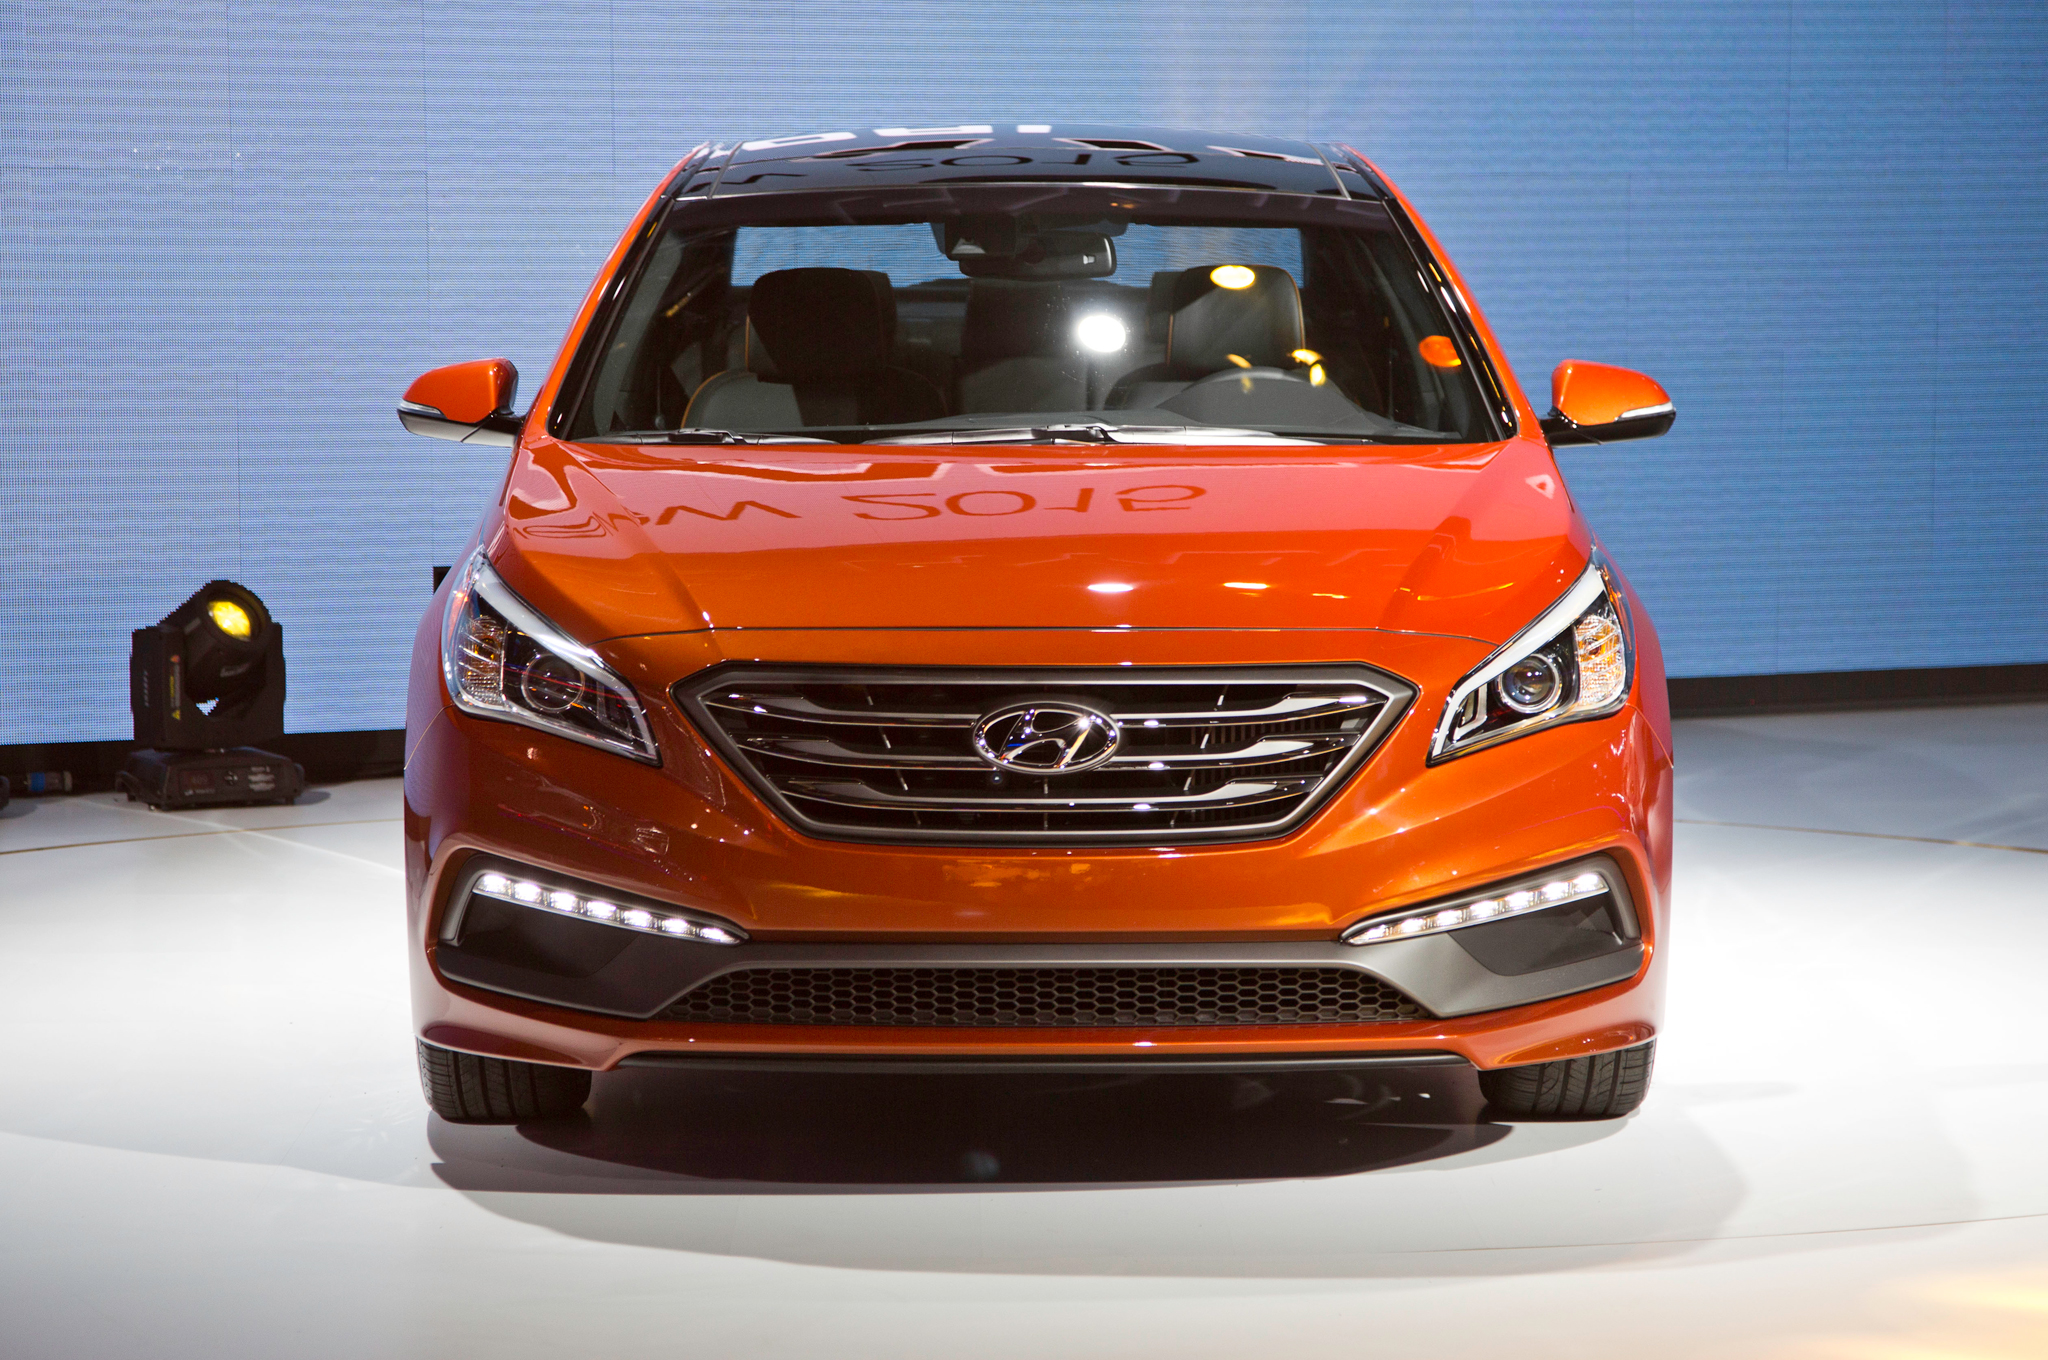 2015 Hyundai Sonata Front Exterior Profile (Photo 6 of 11)